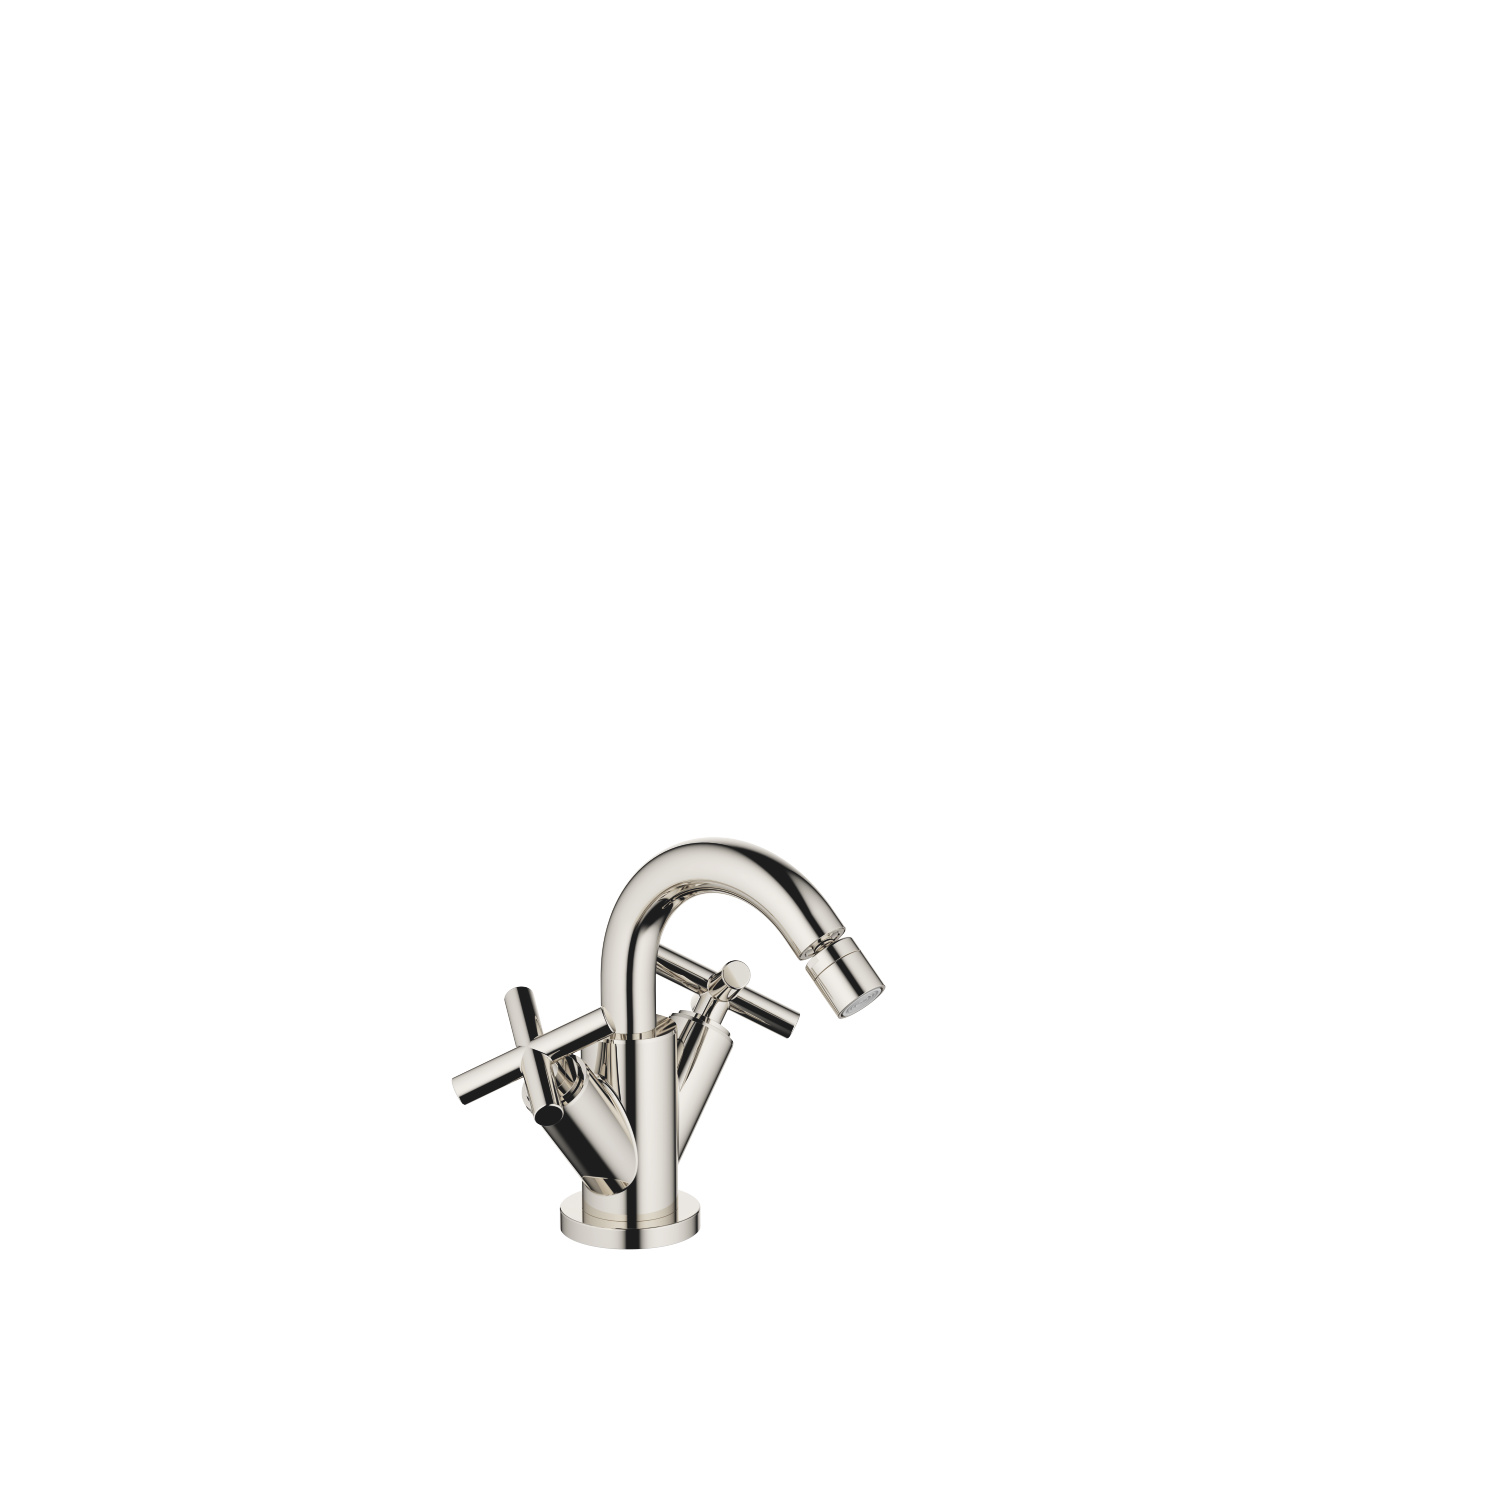 Single-hole bidet mixer with pop-up waste - platinum